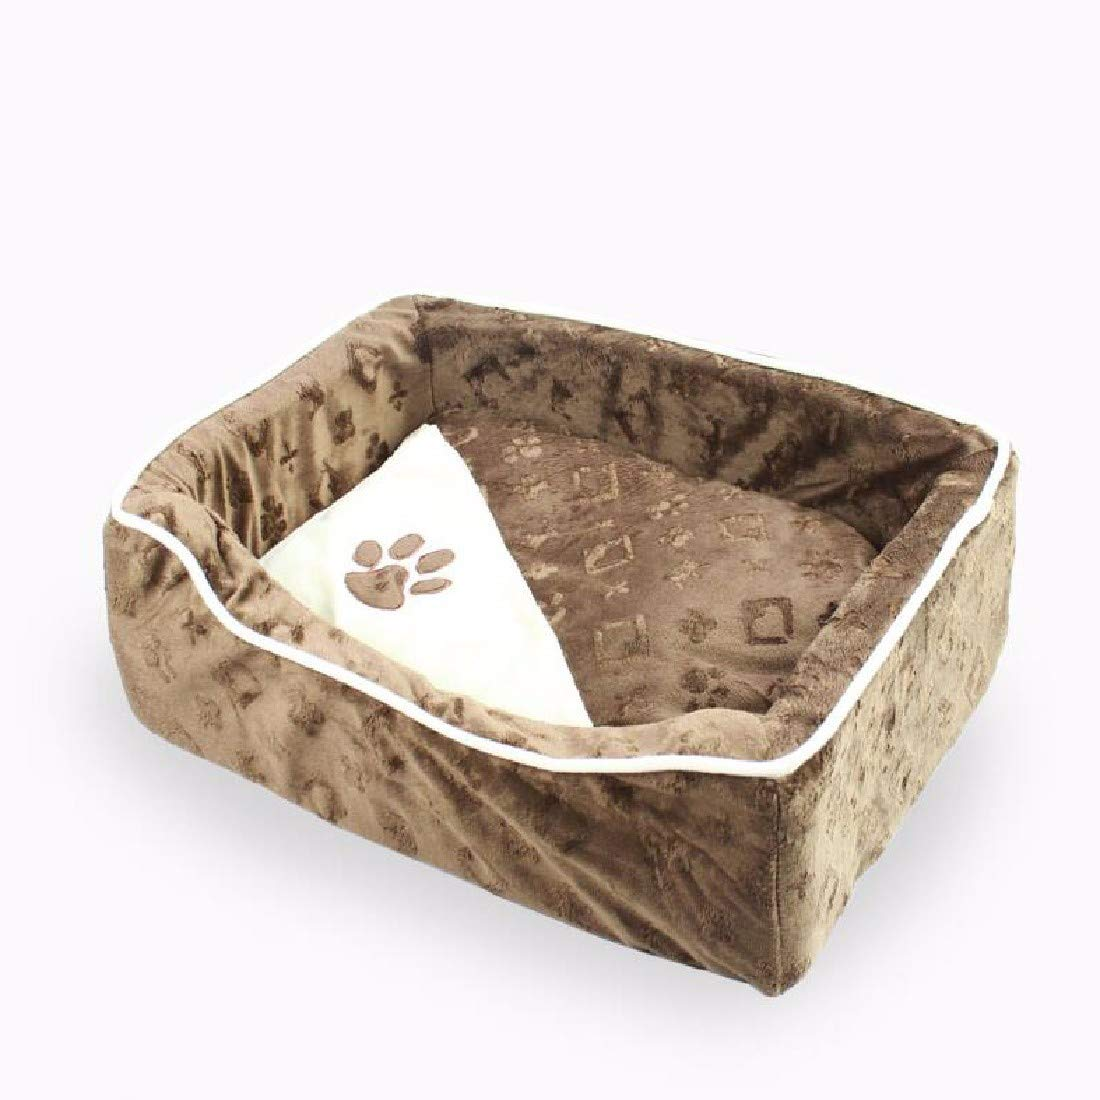 M (56x46x17.5) Pet Dog Cat House Bed Dogs and Cats can be Cleaned and Cleaned,m (56x46x175)